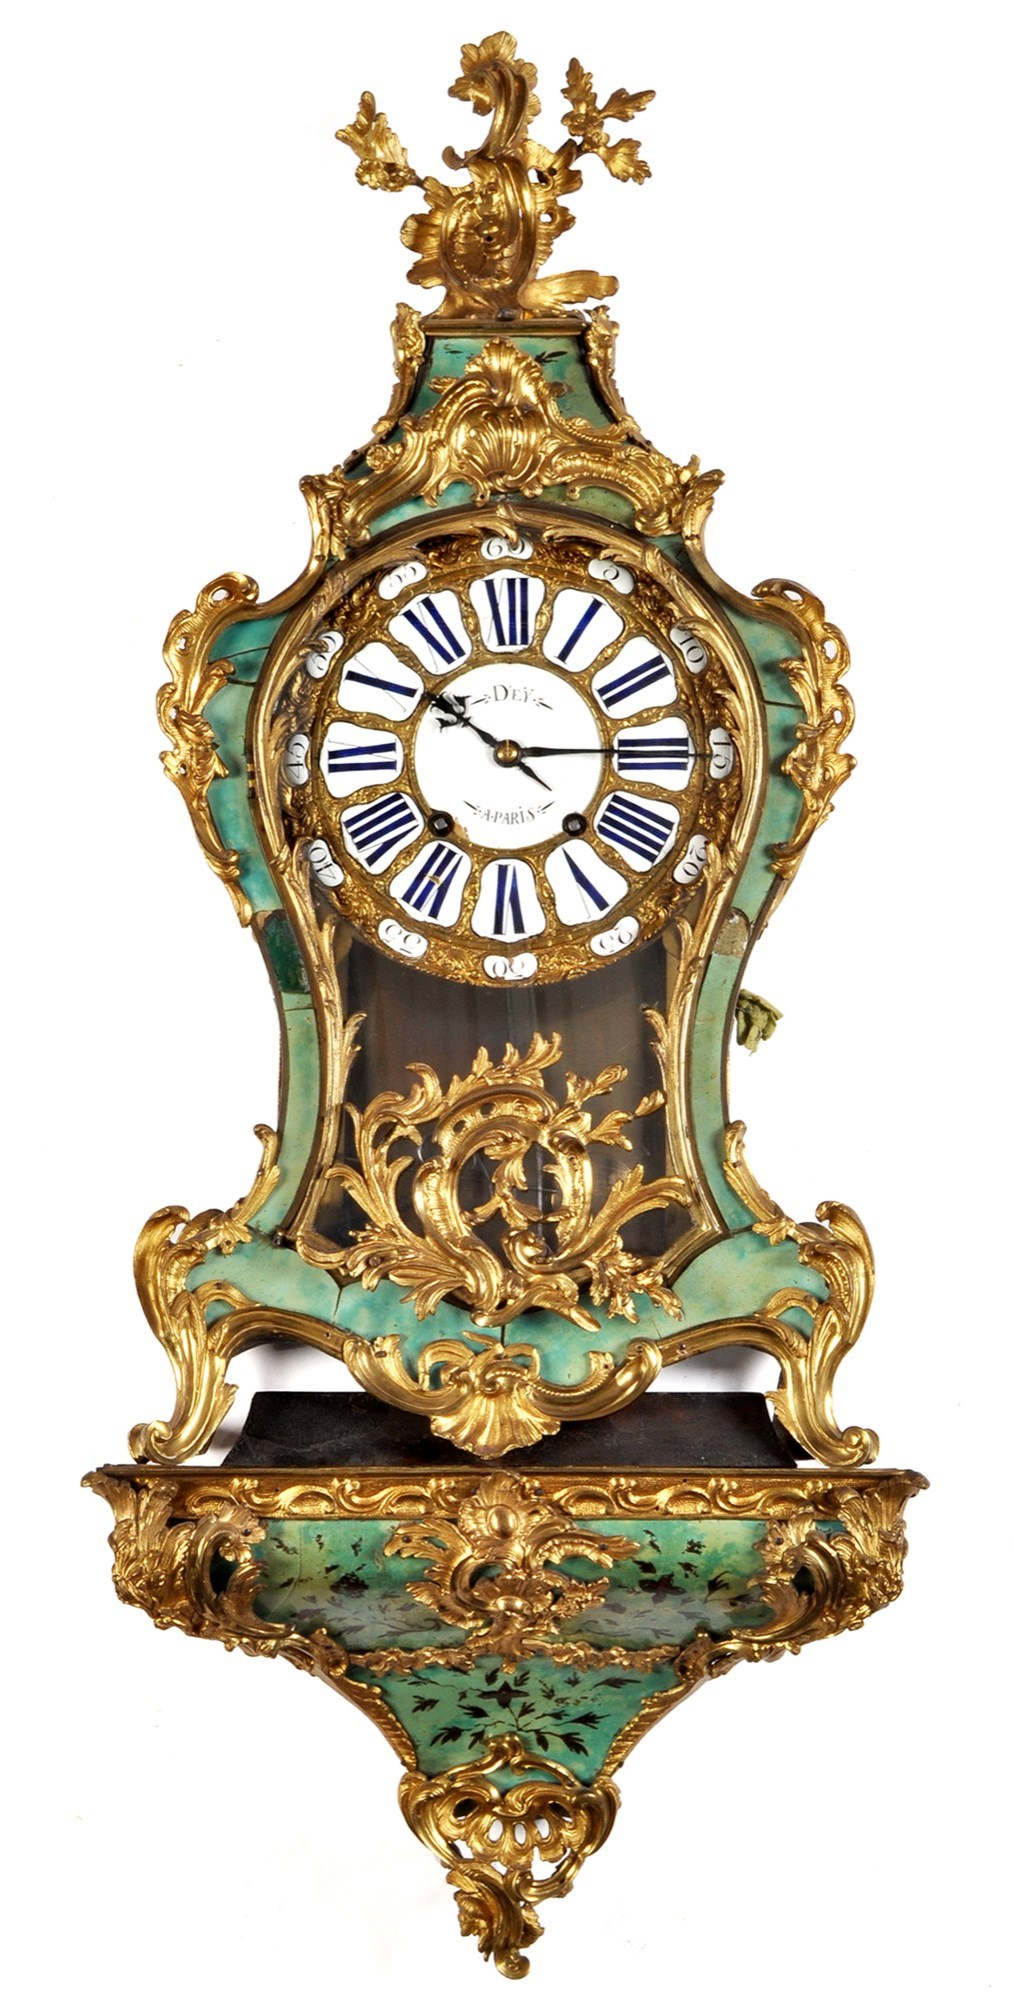 D'Ey, Paris: a large Louis XV style ormolu and stained tortoiseshell bracket clock,